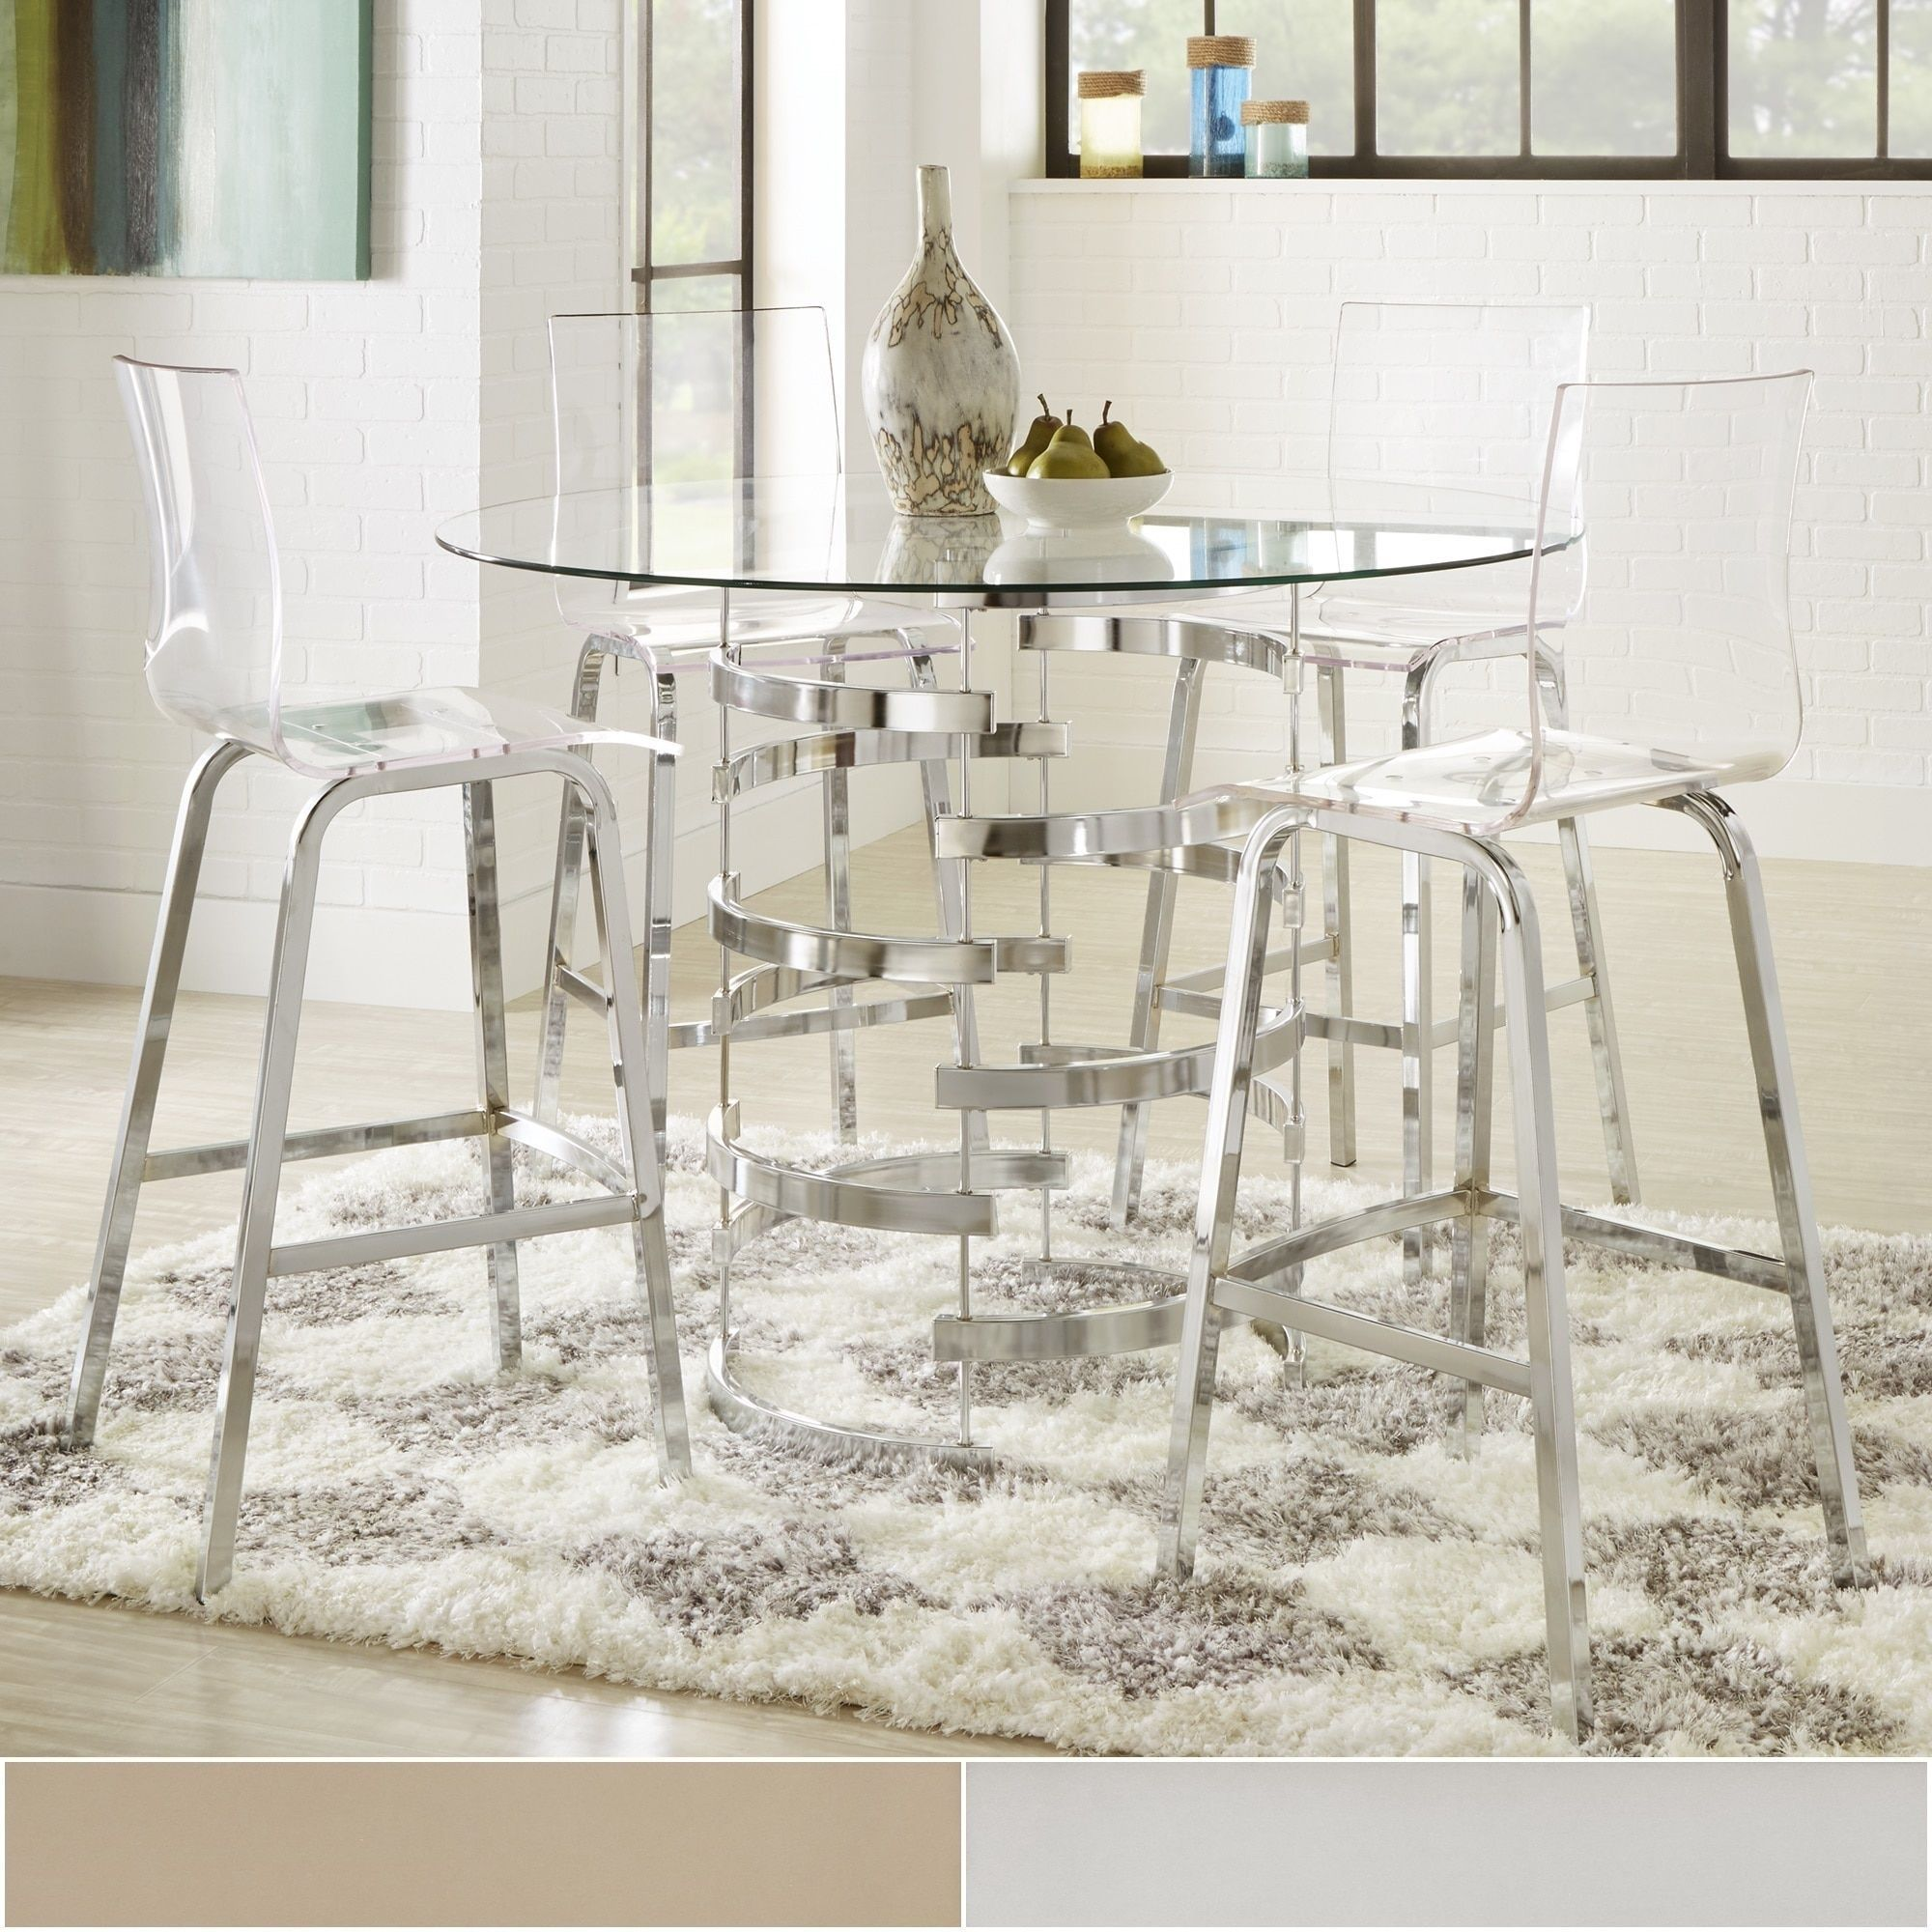 Homelegance Daisy Round Counter Height Table Glass Top 710 36rd At Homelement Com Counter Height Chairs Counter Height Dining Sets Round Counter Height Table